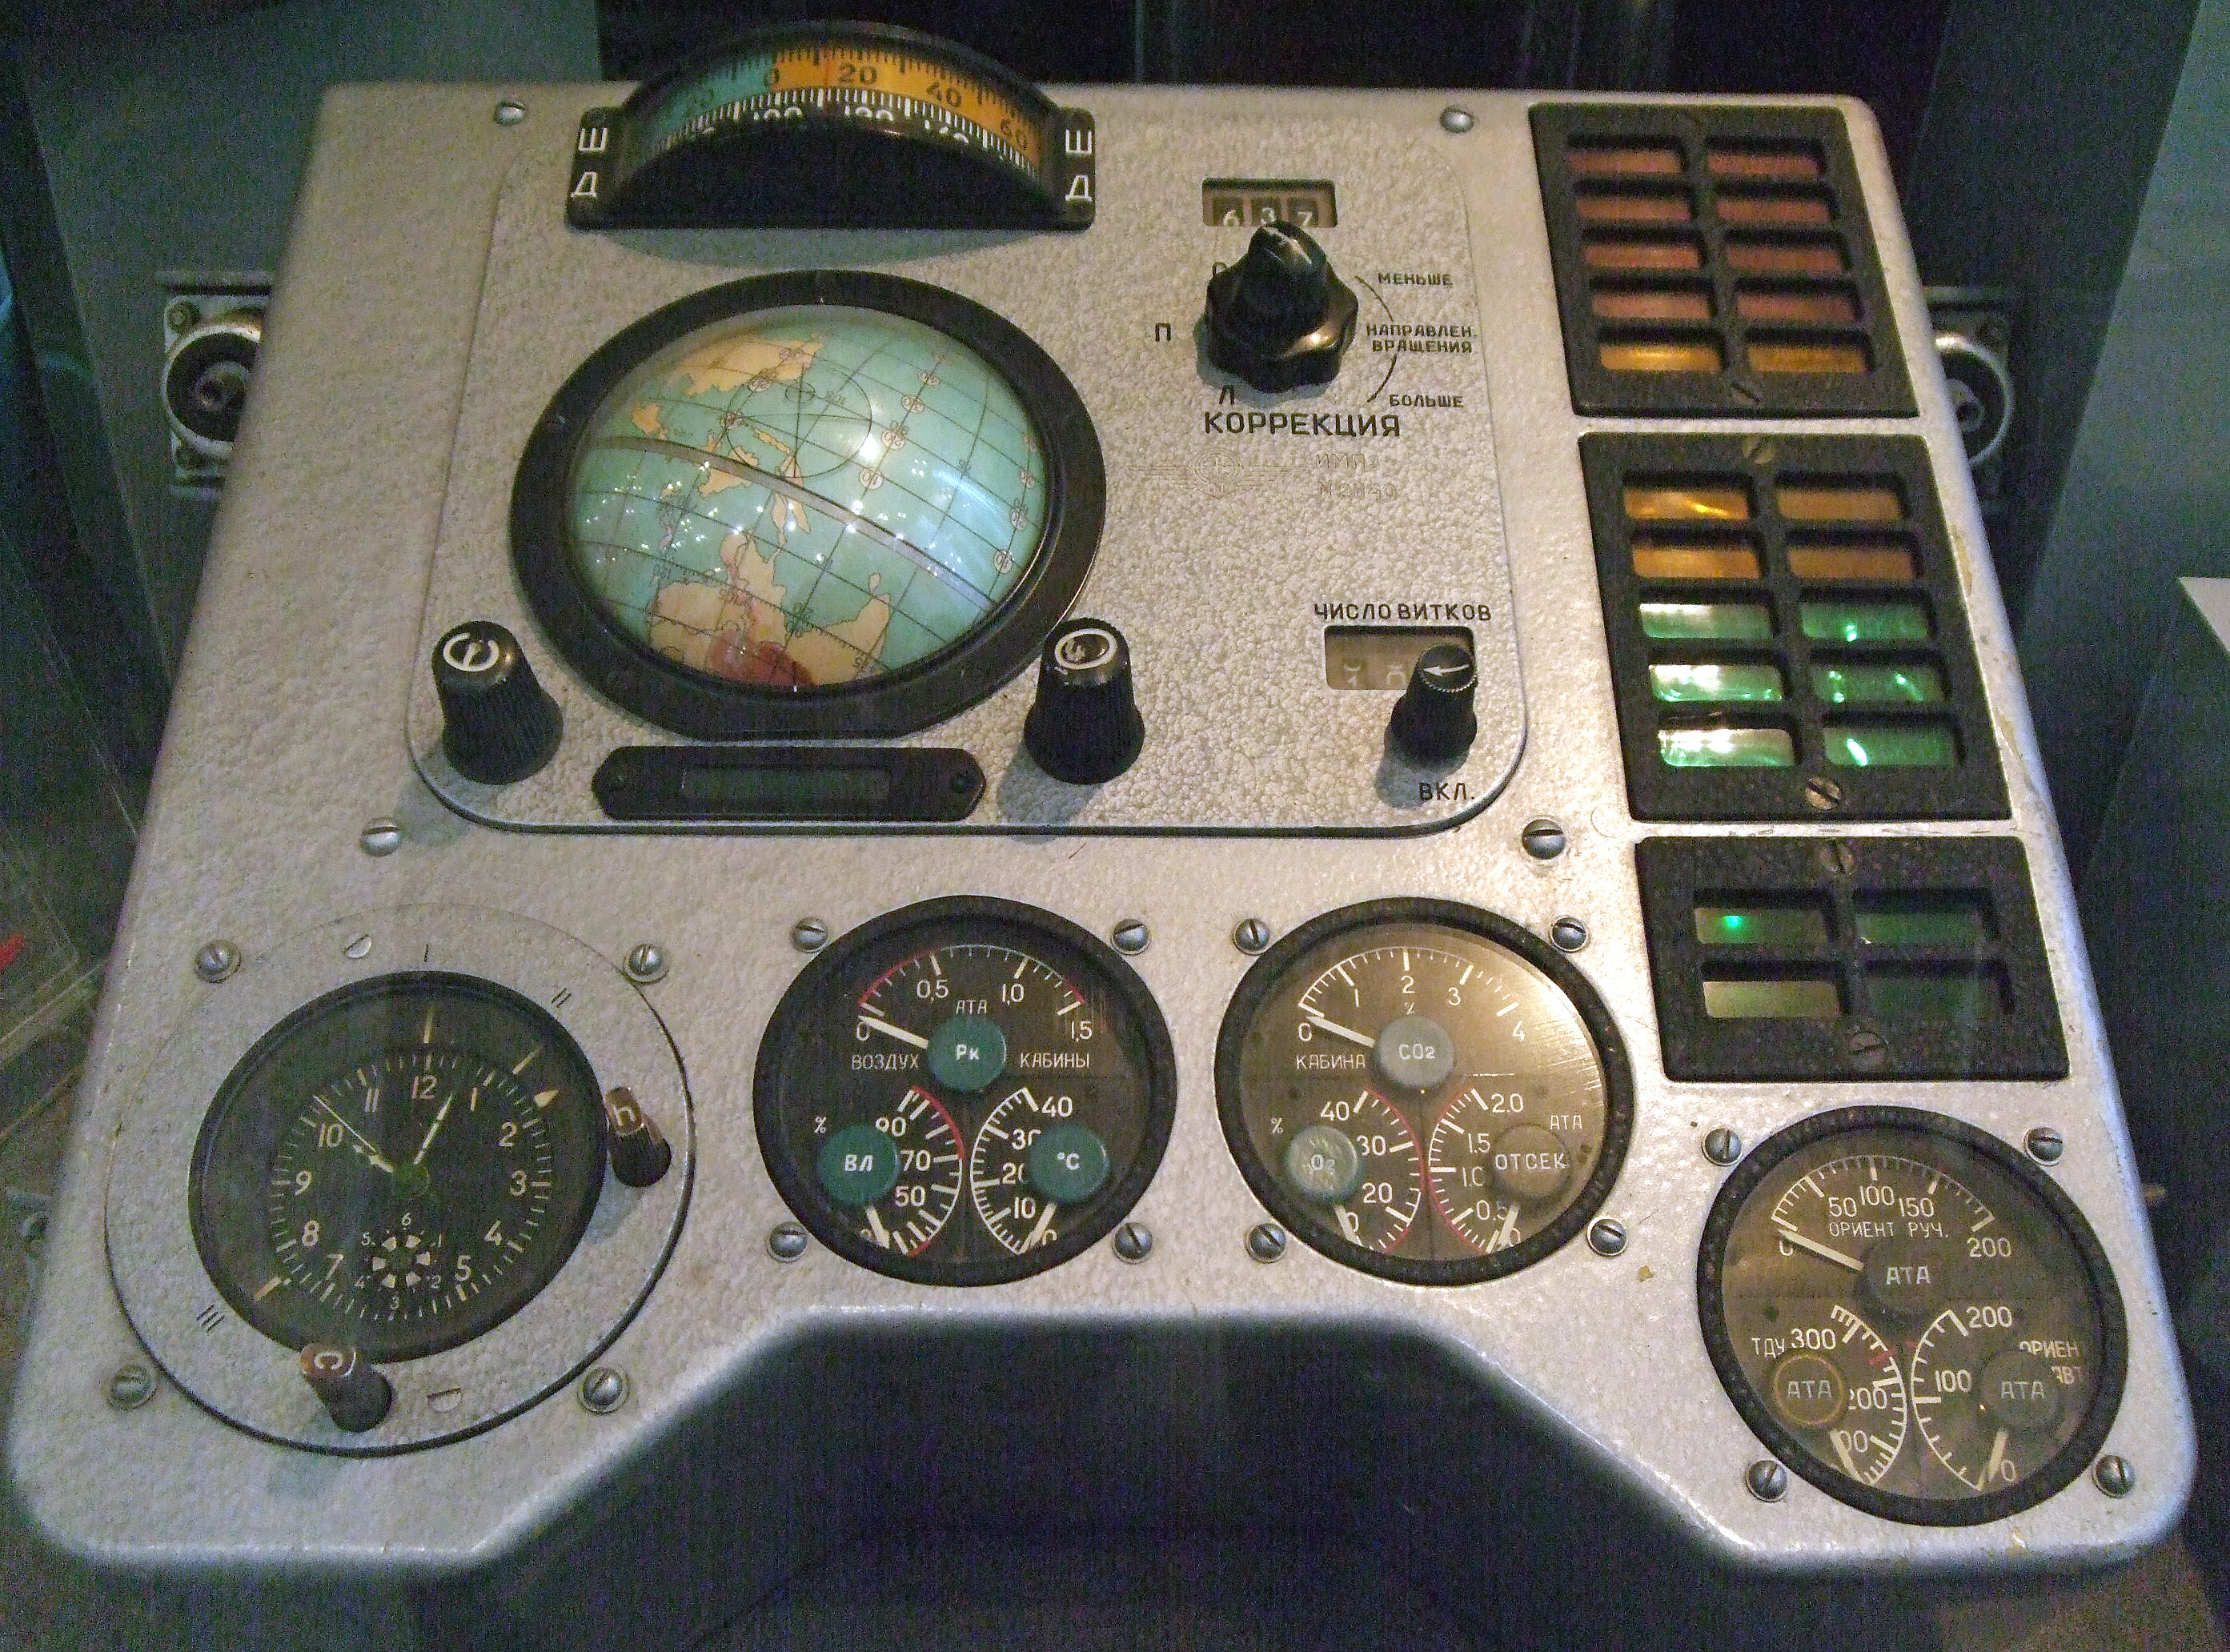 "artoftheostok1instrumentpanelprominentlydisplayingtheoskhodpacecraft""lobus""navigationinstrument""lobus""navigationinstrument"